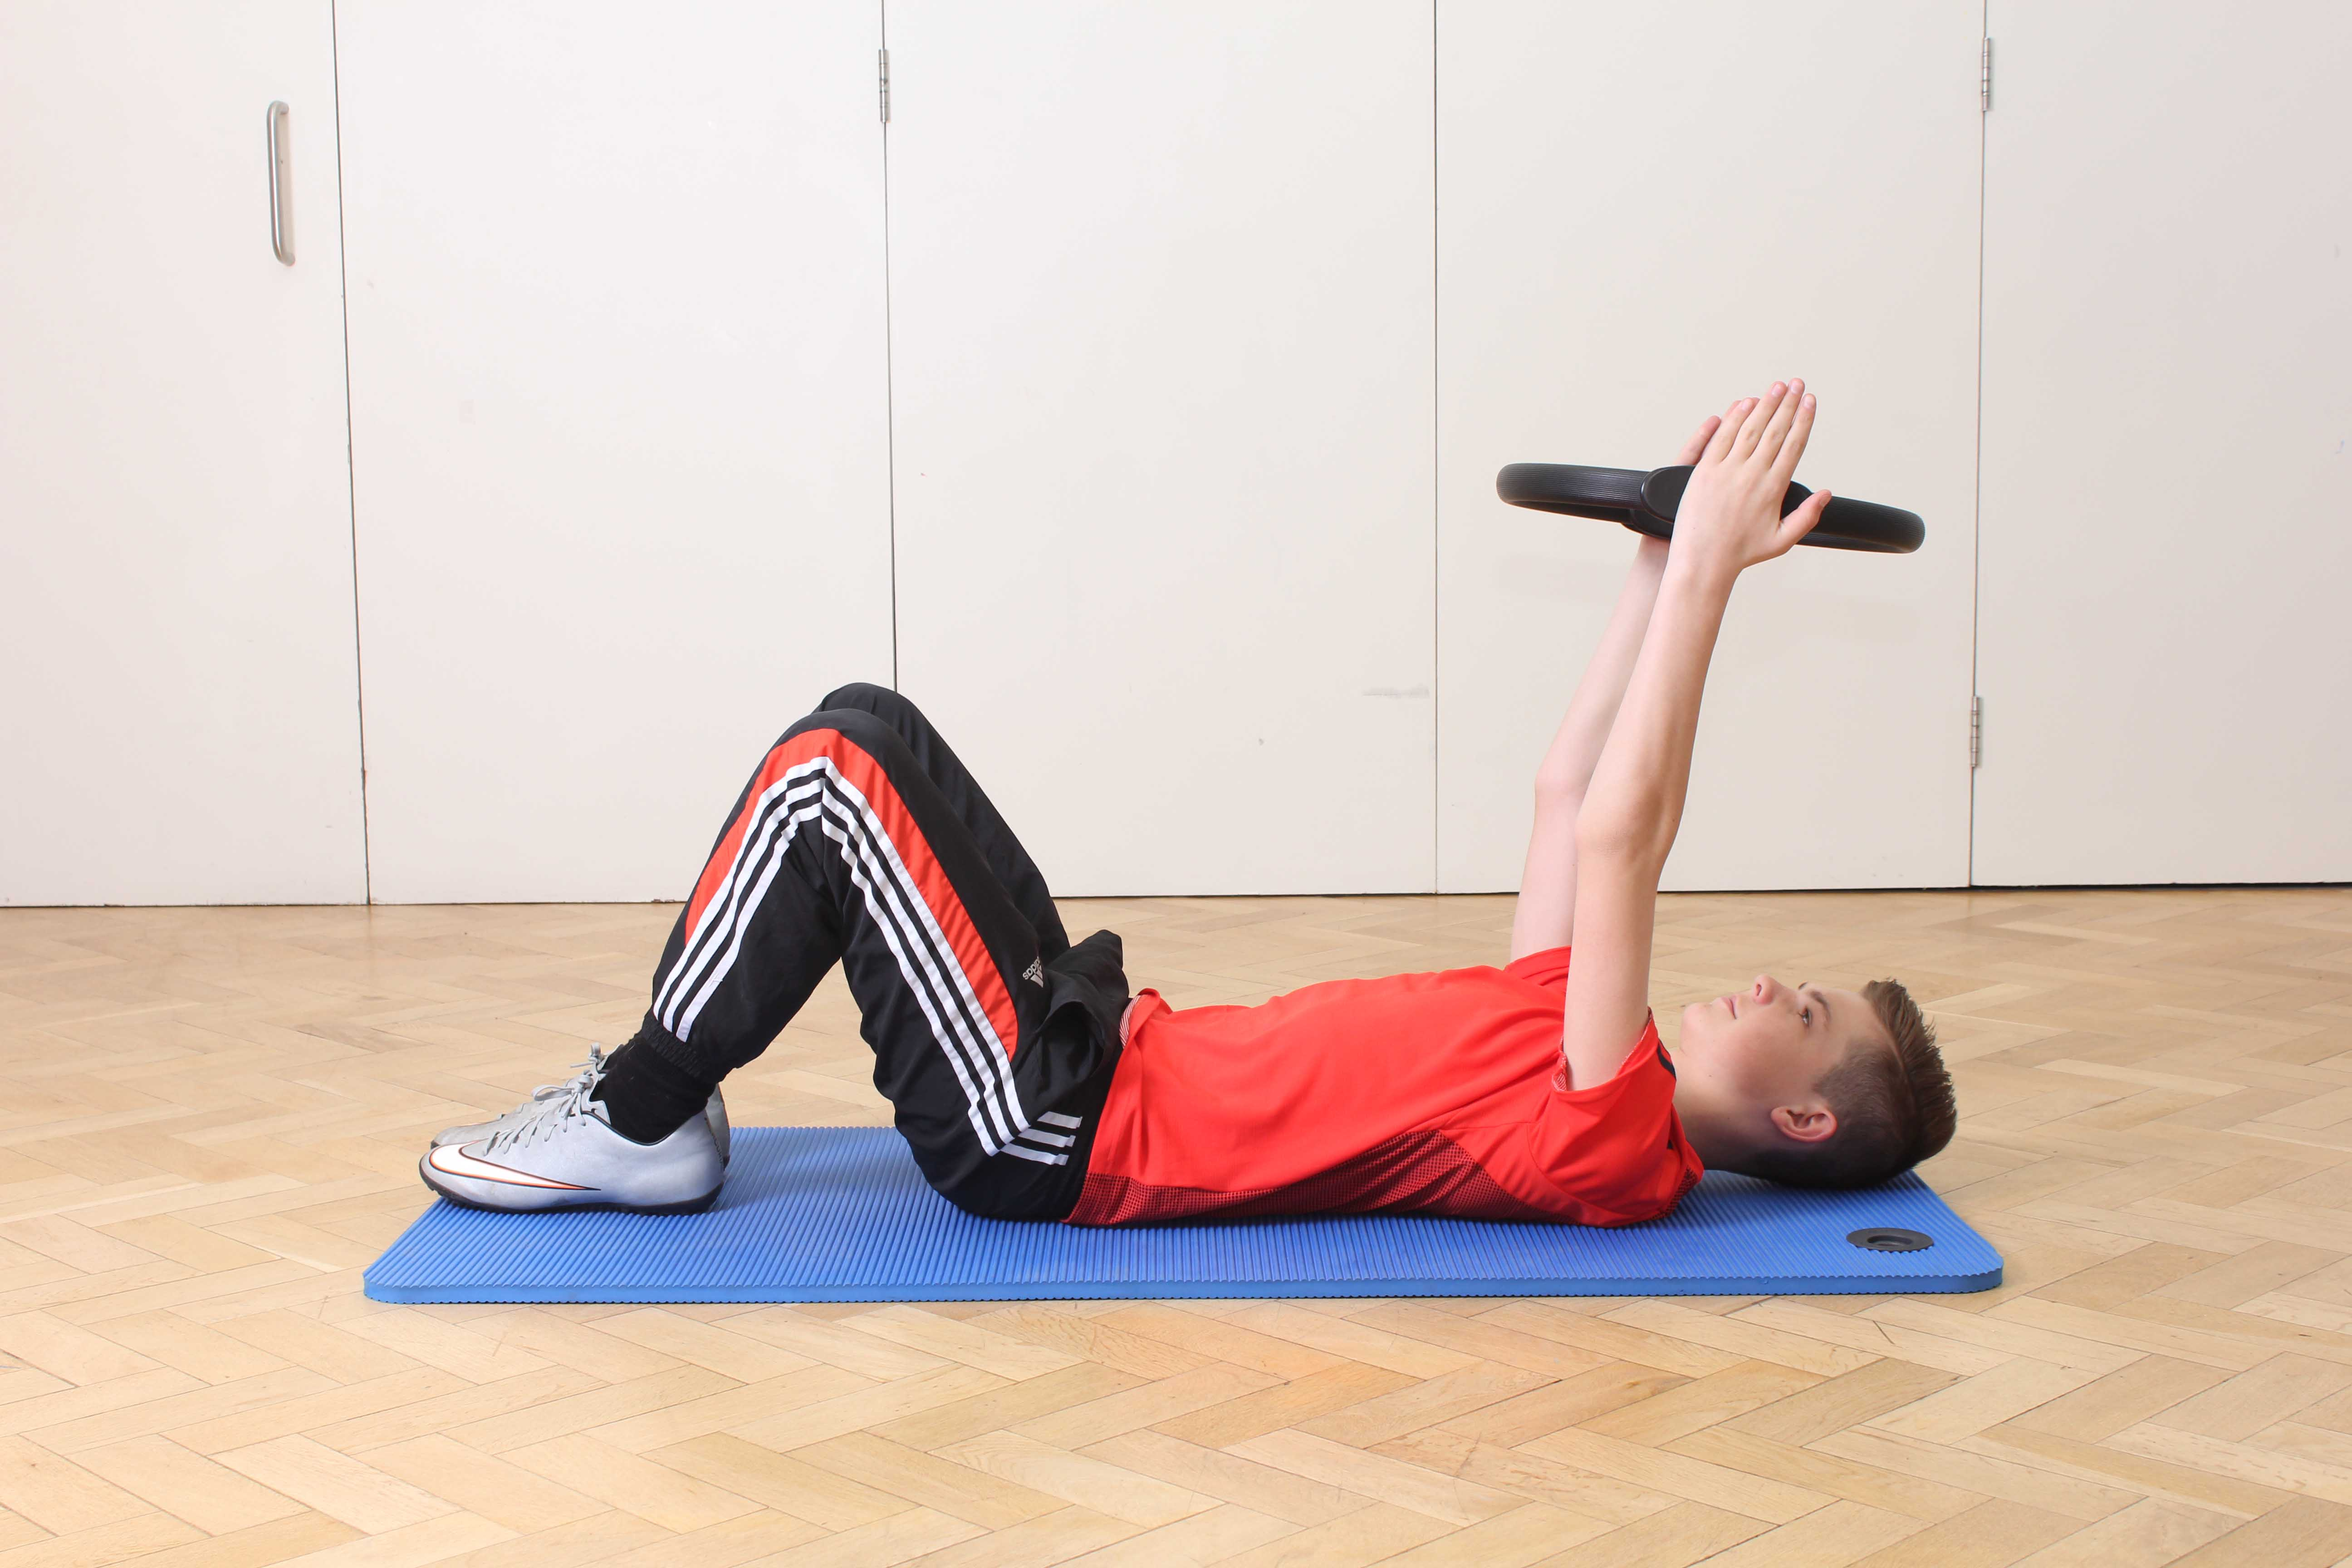 Upper limb strengthening and mobility exercises